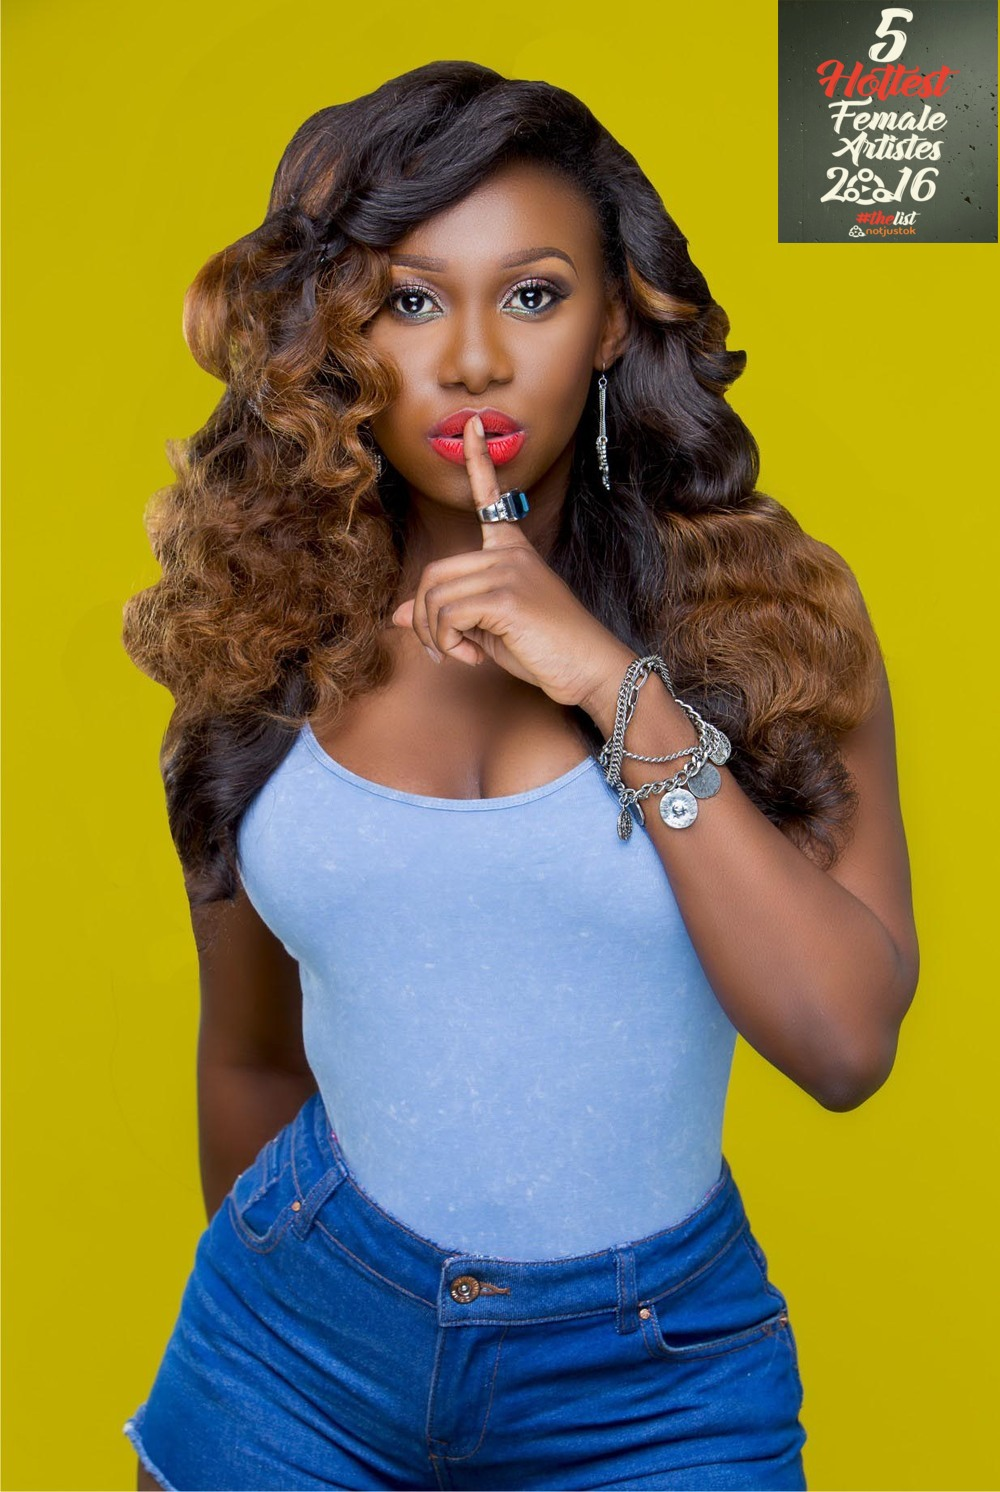 The 5 Hottest Female Artists in Nigeria #TheList2016: #5